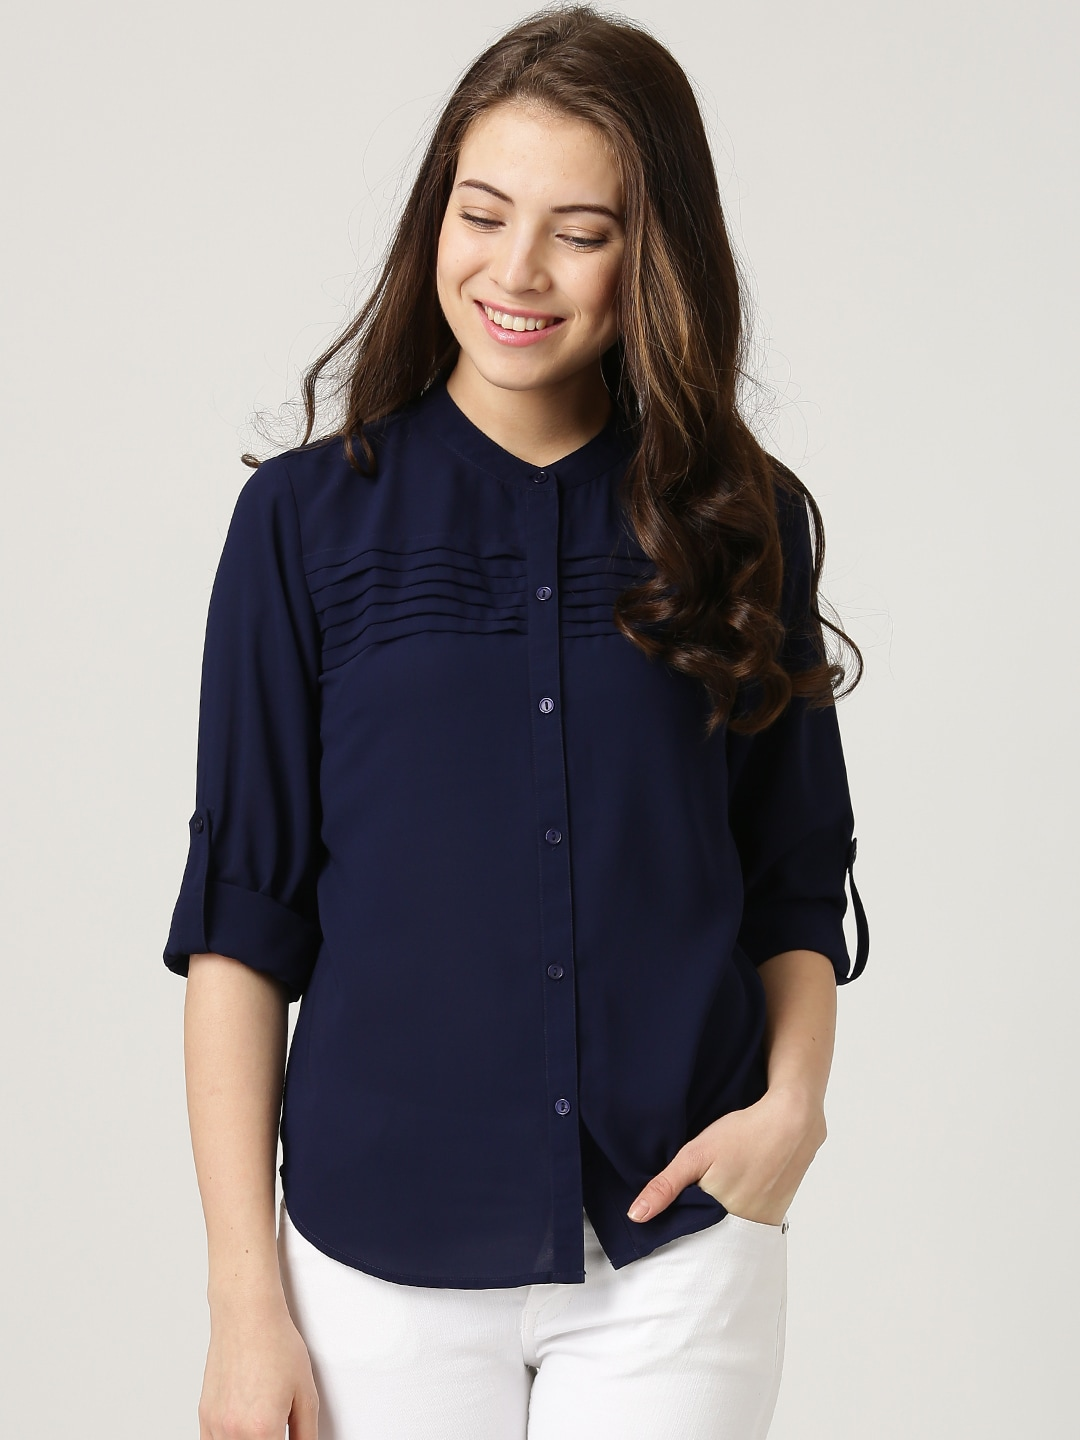 69dd5b4931 Women Shirts - Buy Shirts for Women Online in India